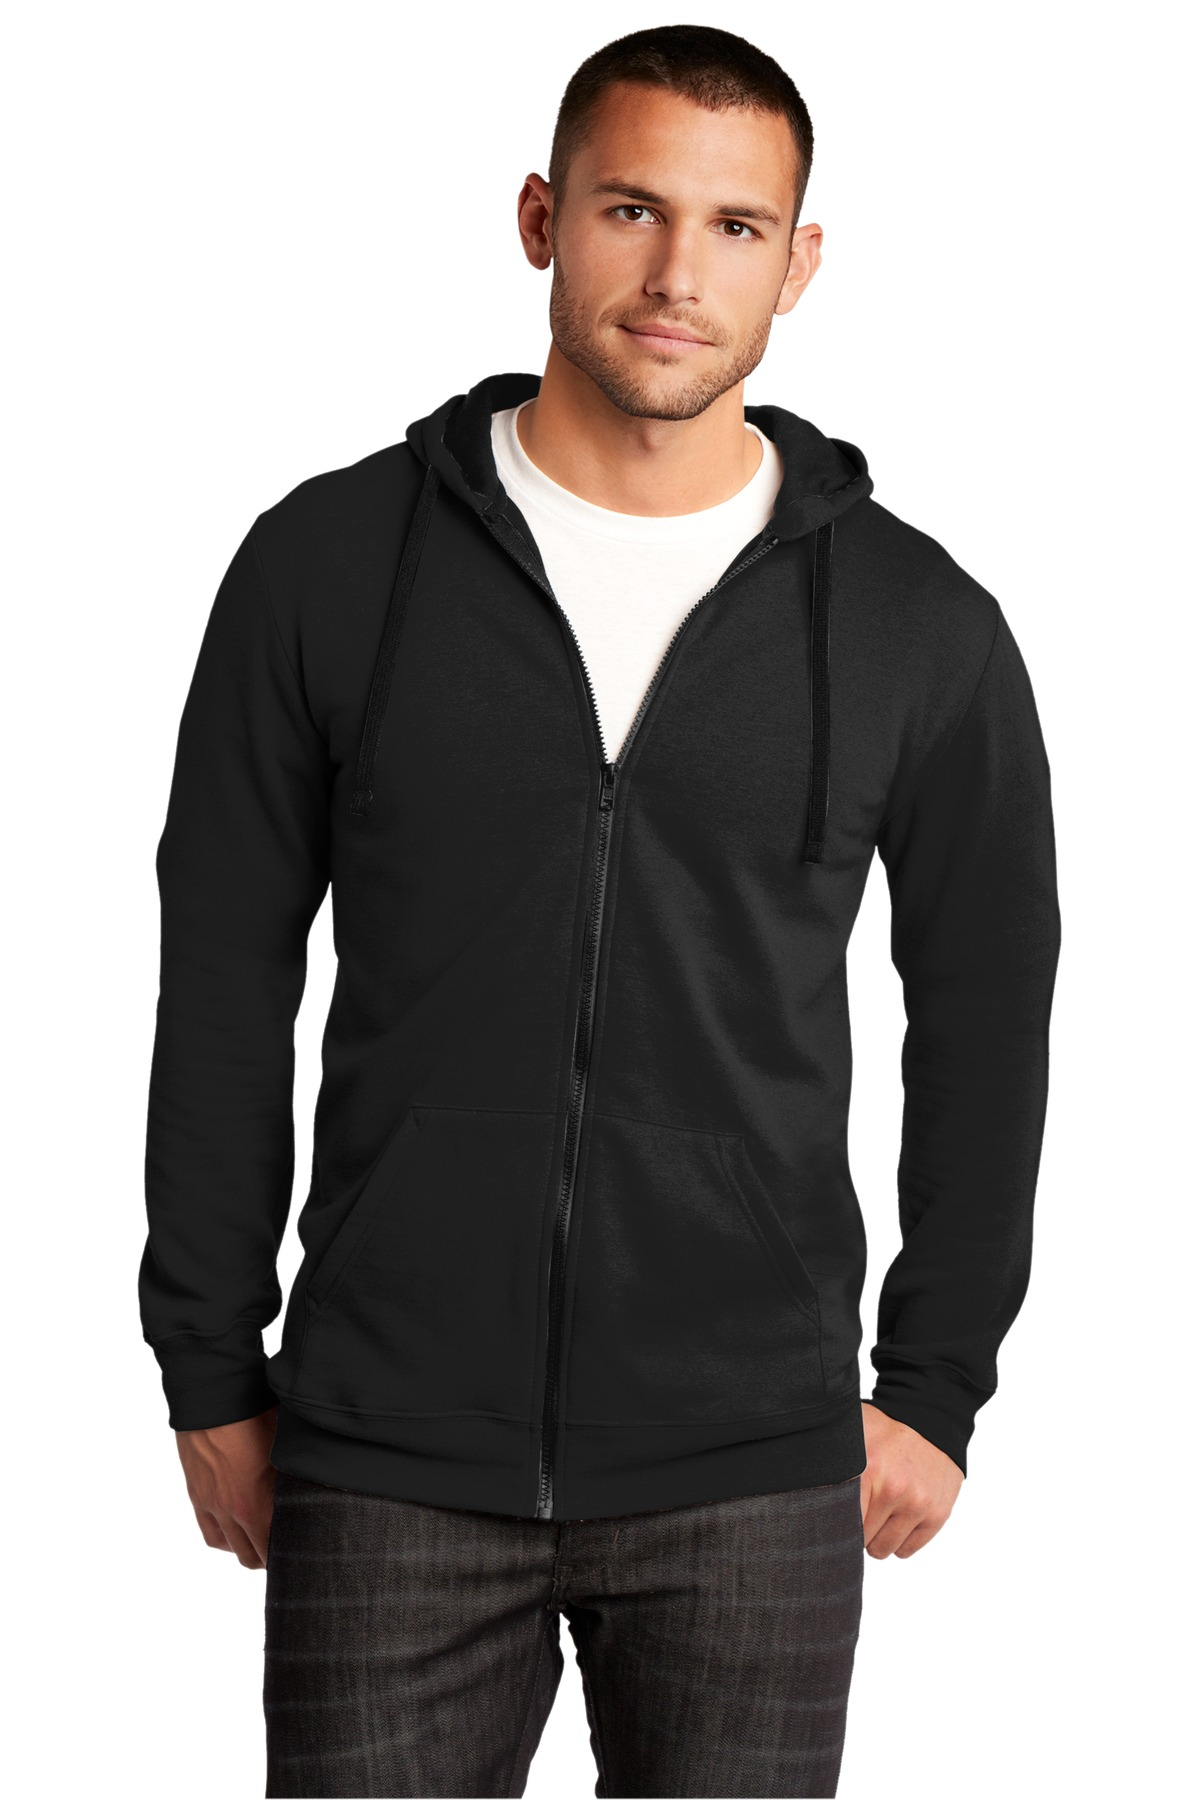 District ®  The Concert Fleece ®  Full-Zip Hoodie. DT800 - Black